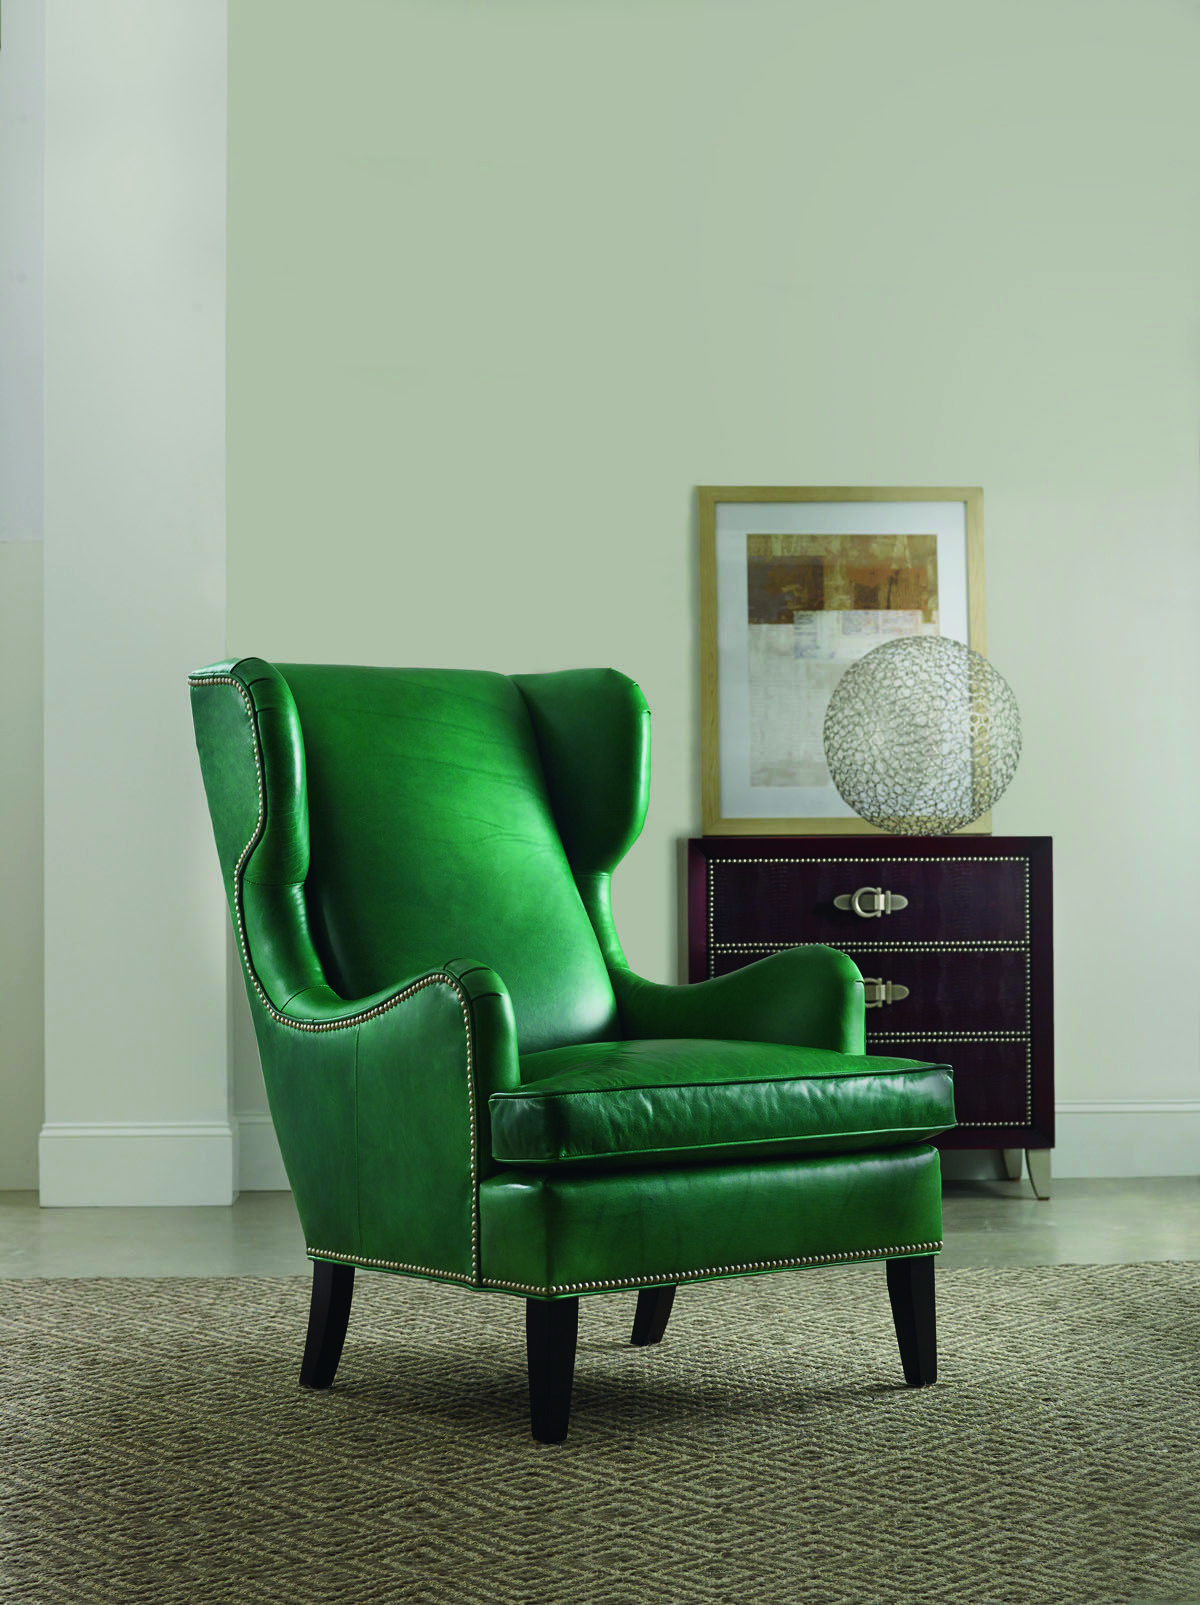 This Emerald Green Leather Chair Is By Hooker Furniture In Their Bradington  Young Collection. Great Shape, Great Color! TheHome.com #hpmkt